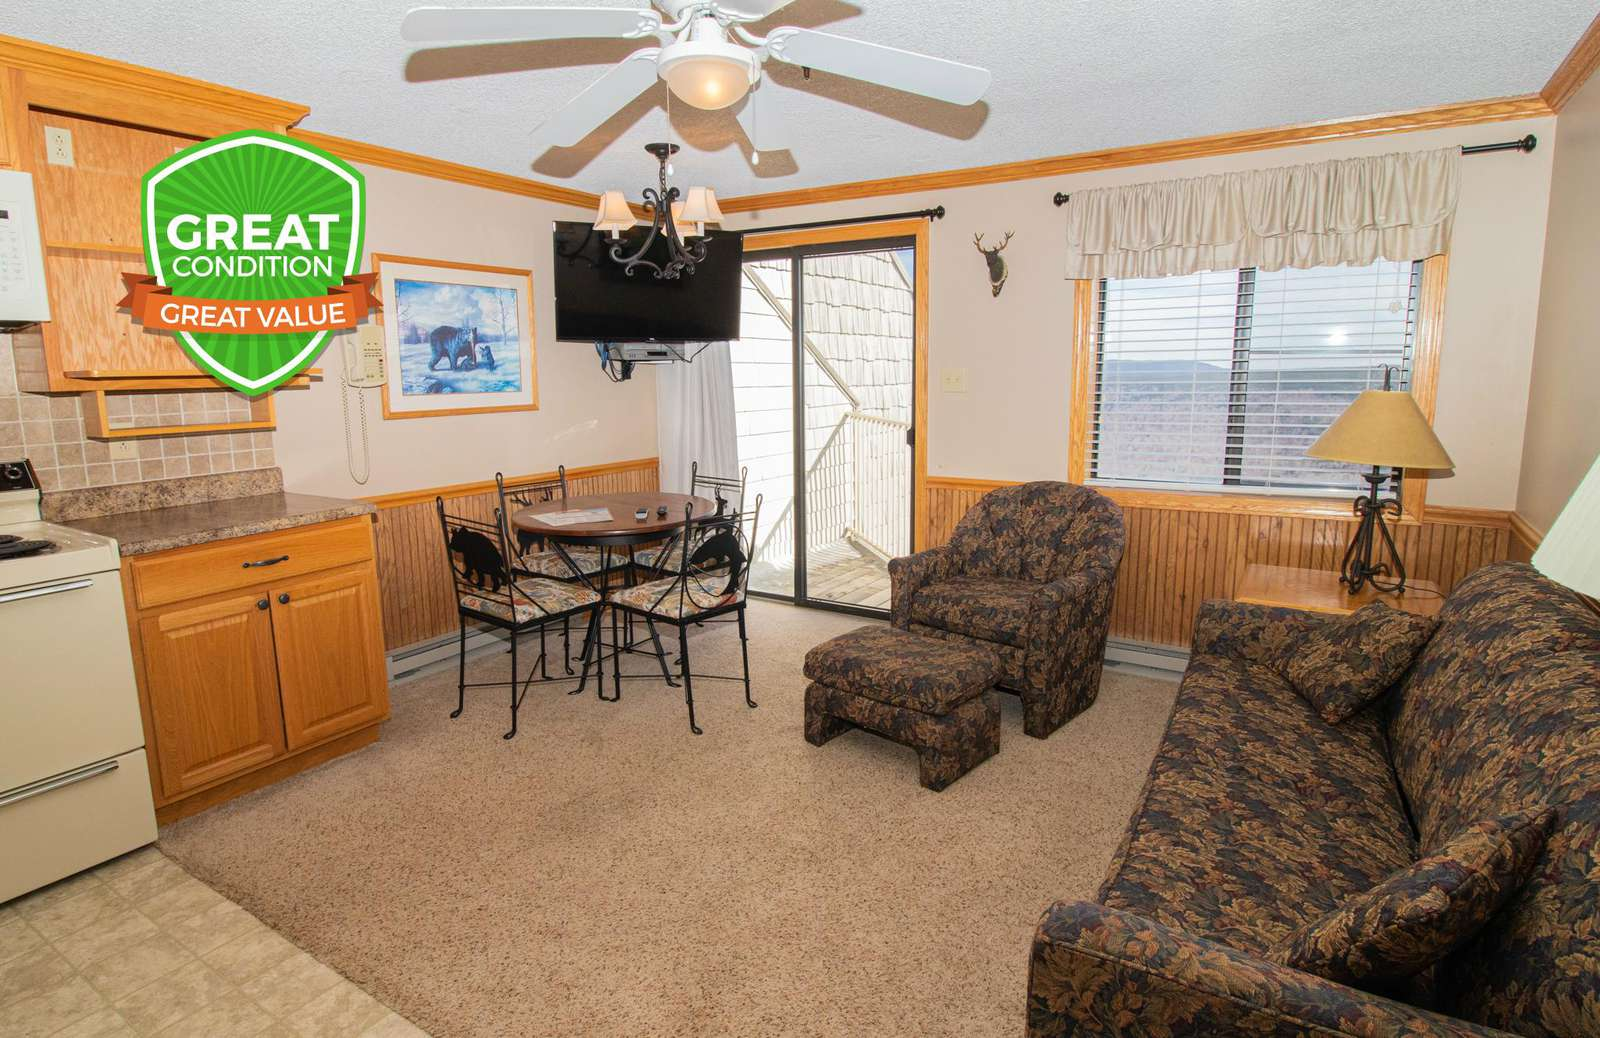 ML356 - Your Snowshoe home away from home! Clean & cozy!